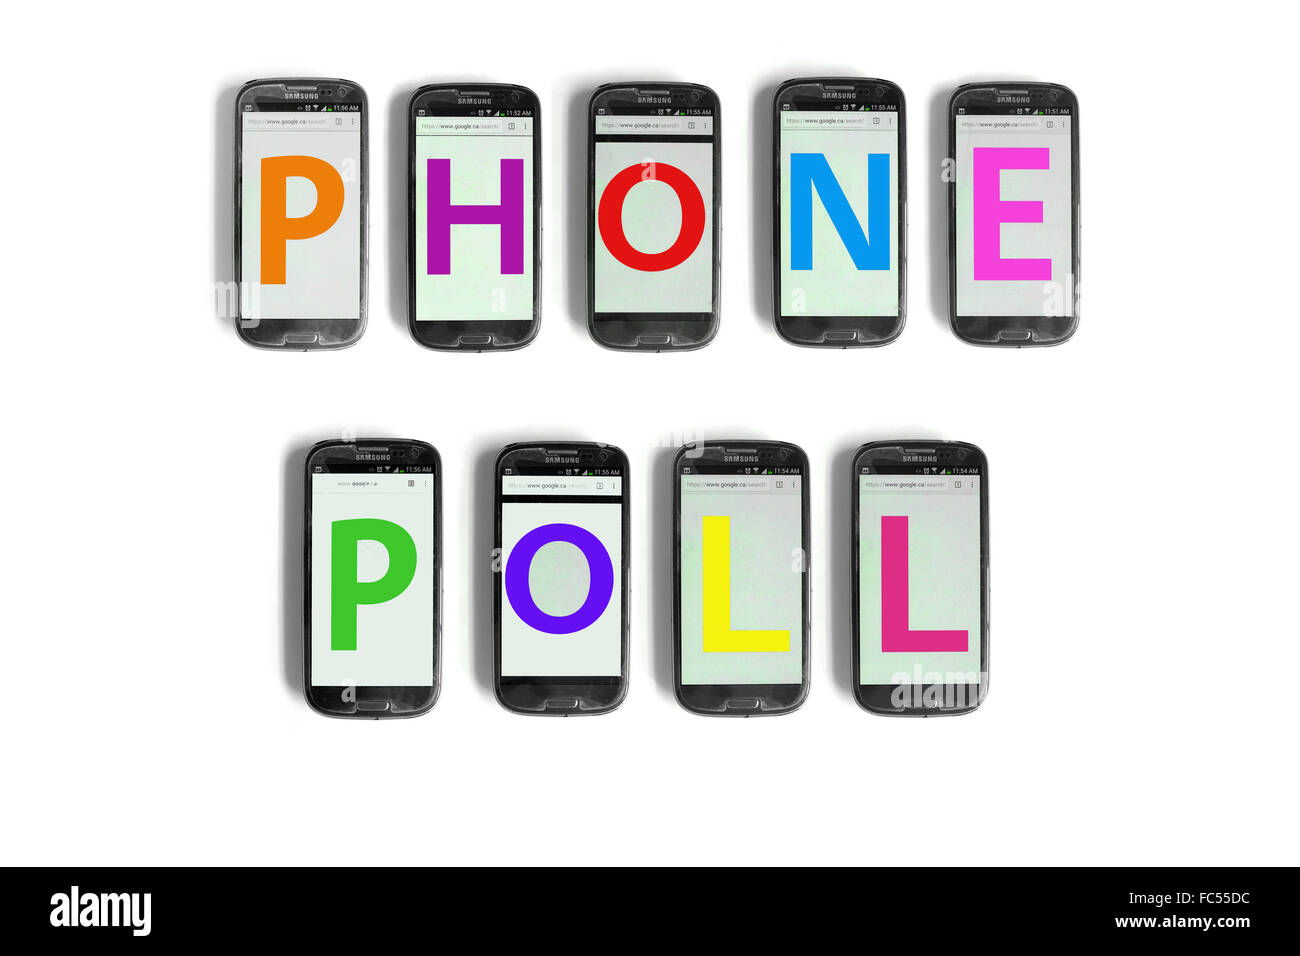 Phone Poll written on the screens of smartphones photographed against a white background. - Stock Image